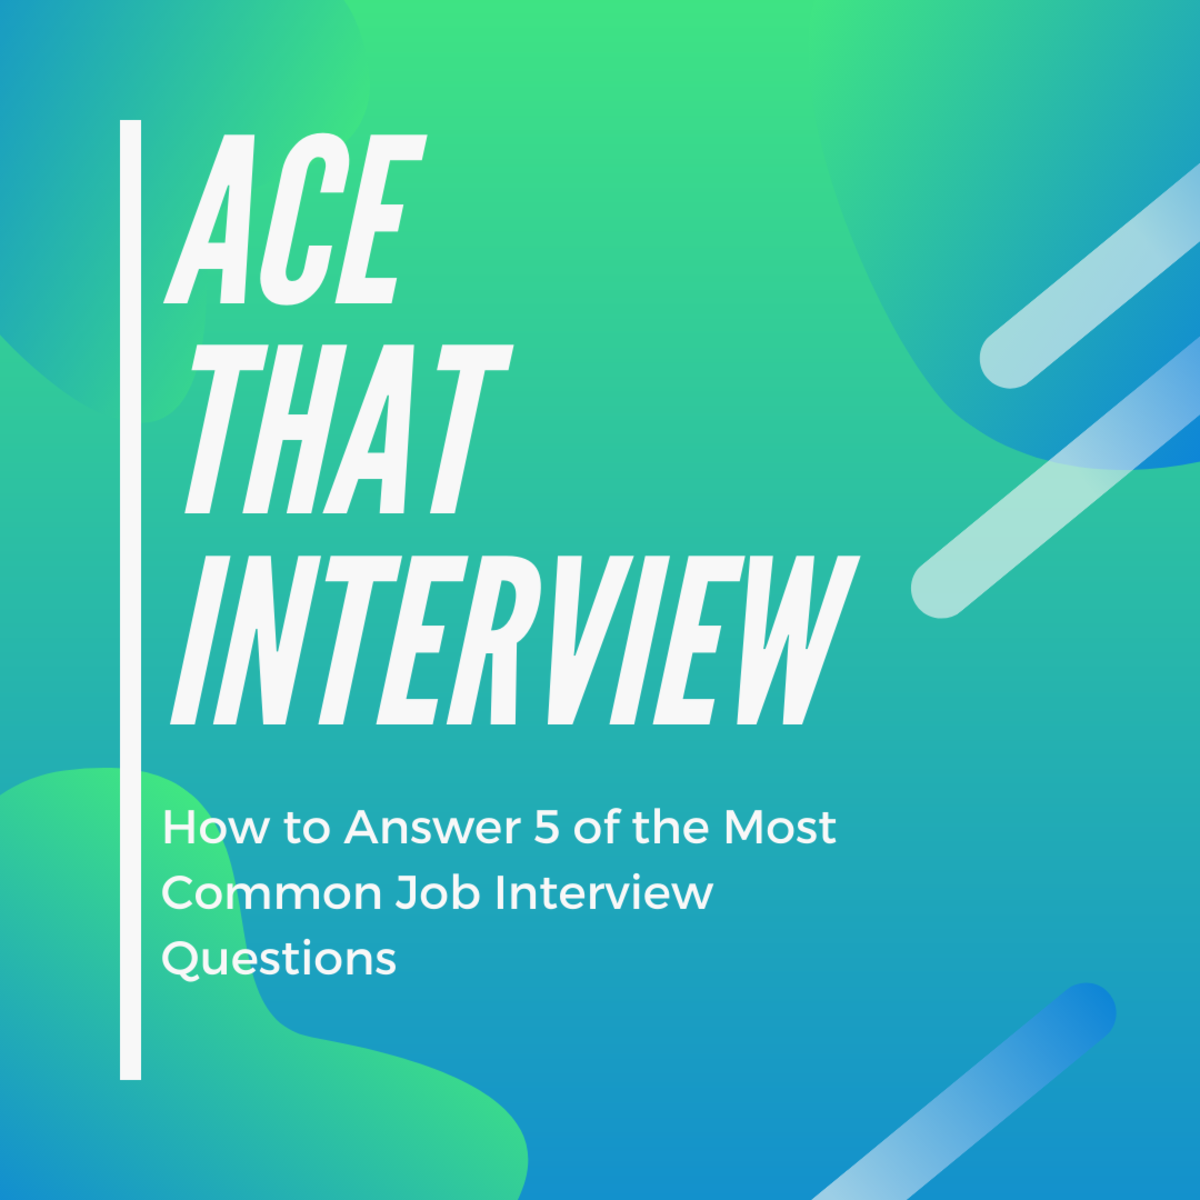 How to Answer 5 of the Most Common Job Interview Questions